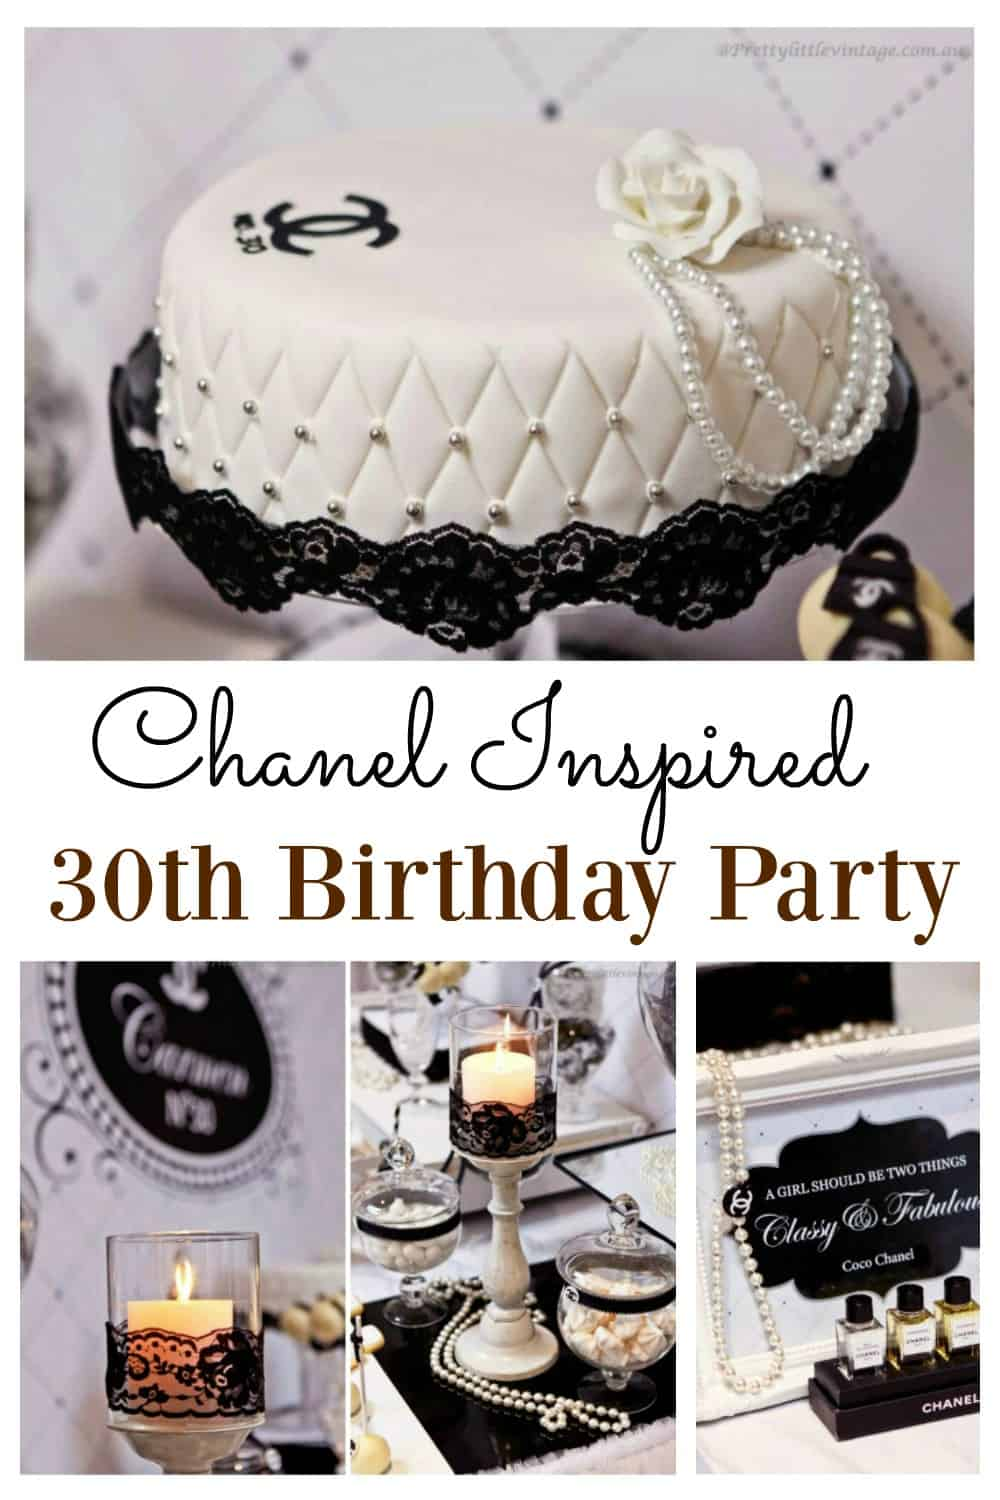 If you are looking to organize a Chanel inspired party, this 30th birthday party will provide a ton of inspiration. It has everything you need for an elegant party vibe with an awesome idea for the favour bags!